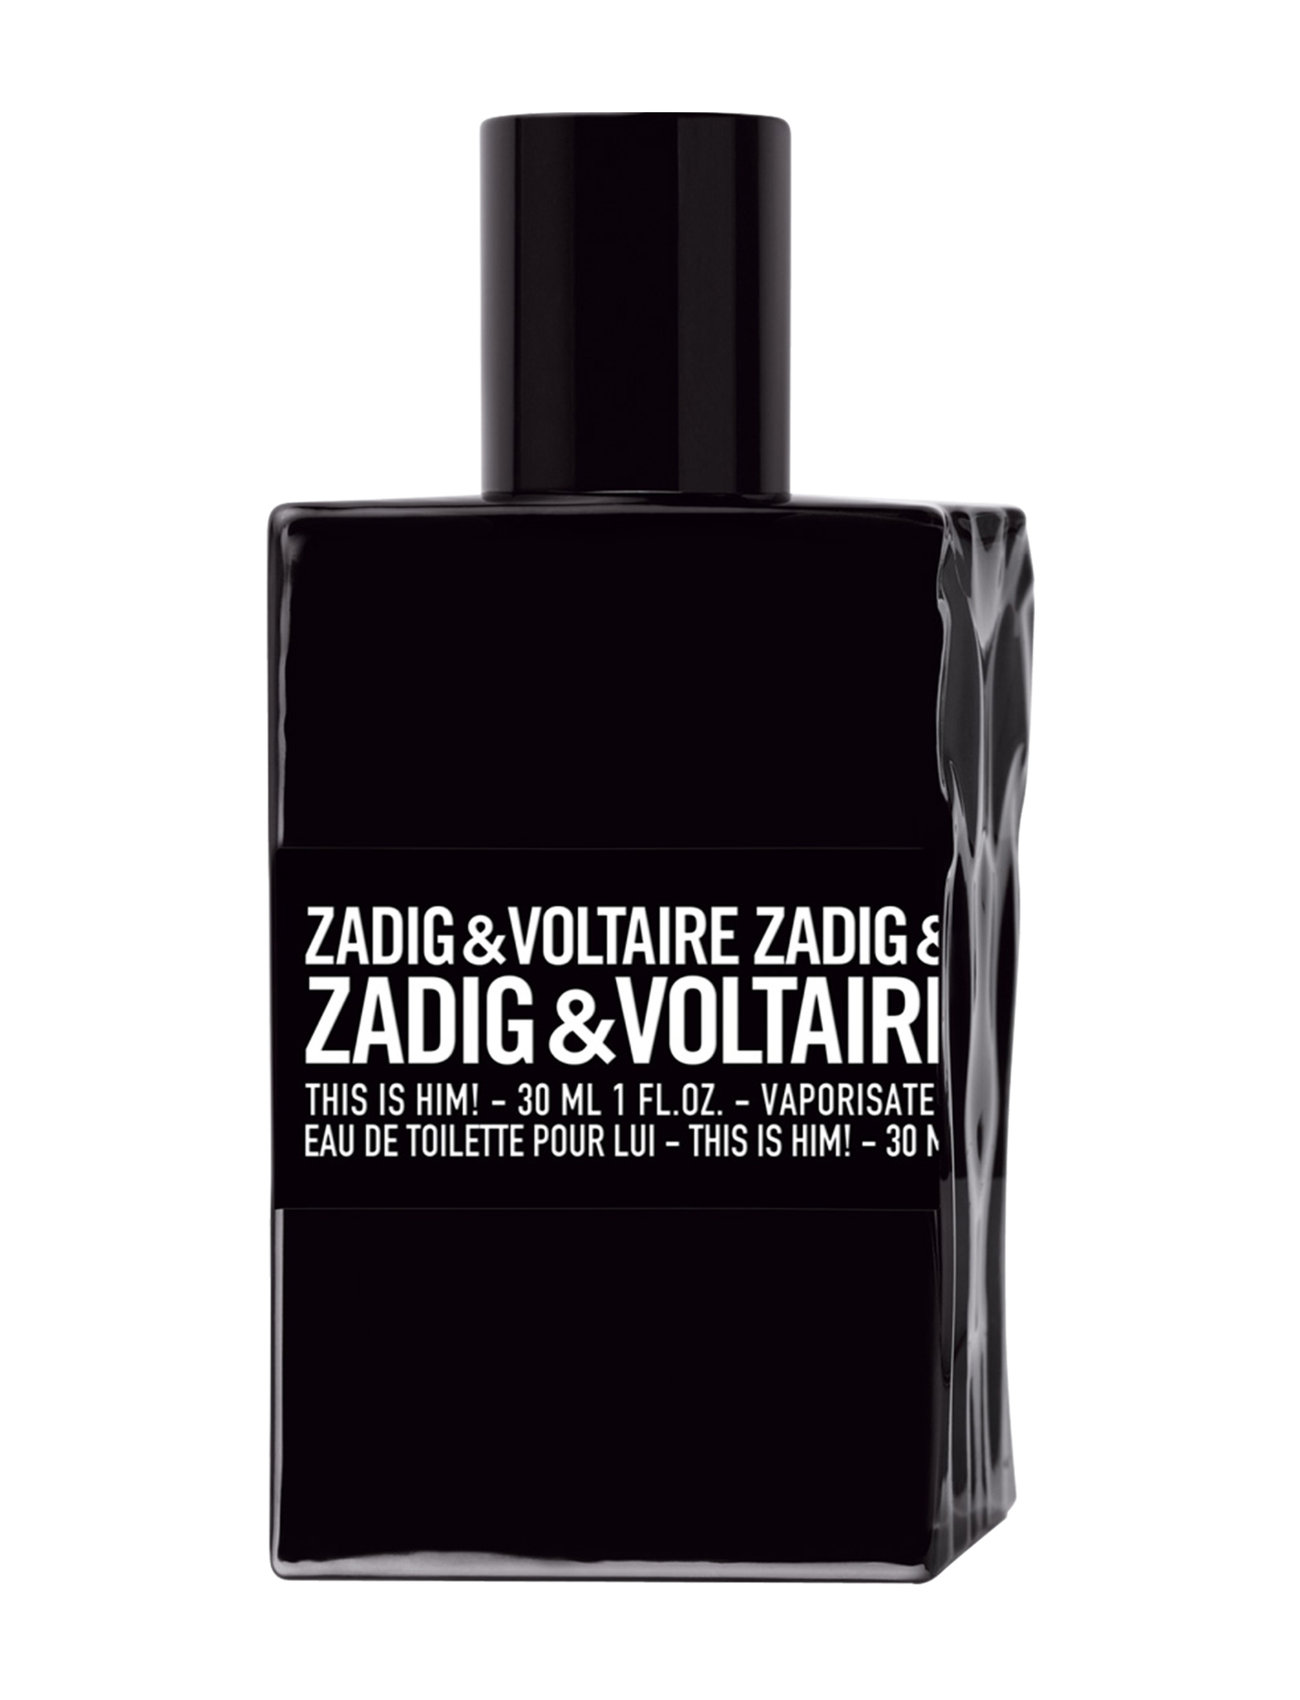 zadig & voltaire fragrance Zadig & voltaire this is him! eau d fra boozt.com dk